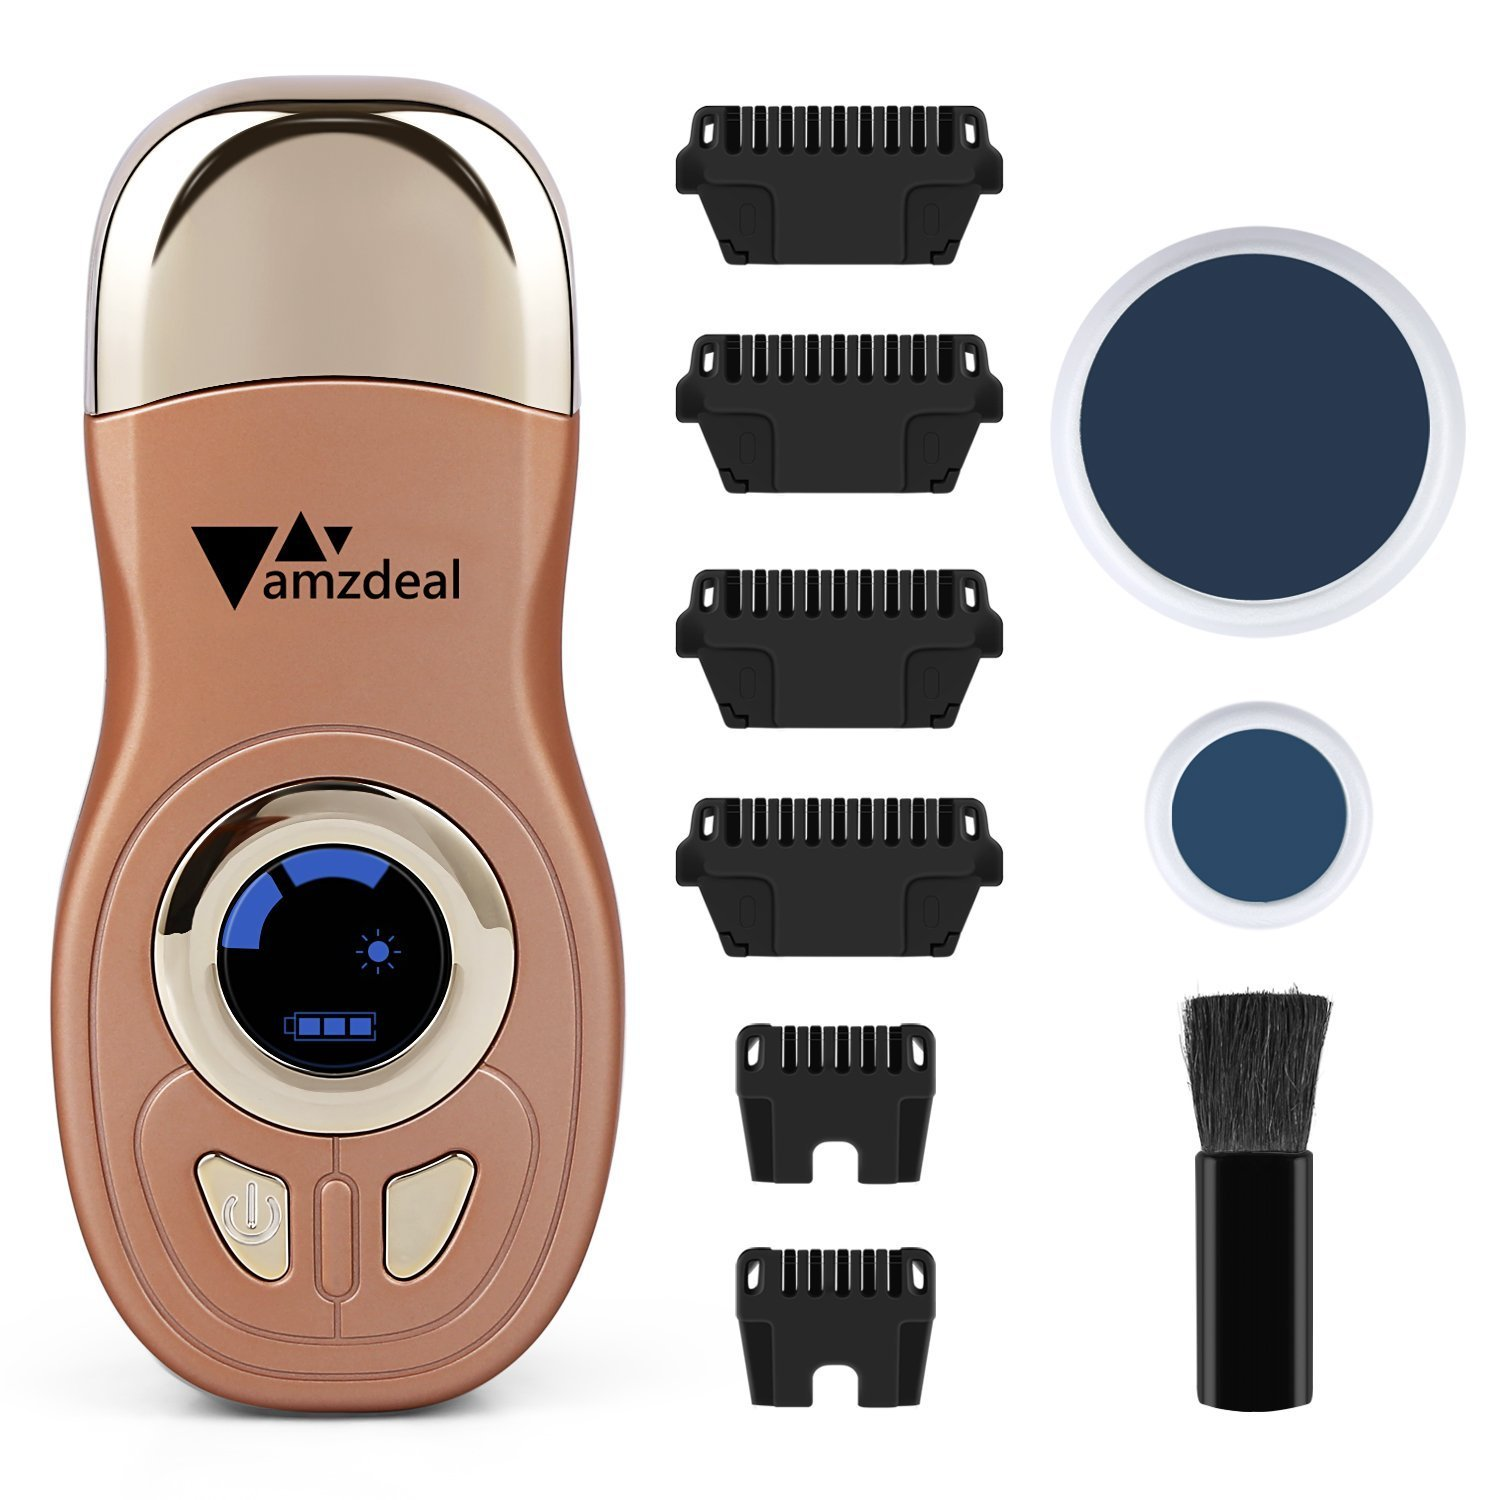 Amzdeal Hair Removal Machine Permanent Hair Removal Ray Thermal Body Arm Leg Facial Rechargeable Electric Epilator Shaver Trimmer Razor for Men and Women by amzdeal (Image #1)